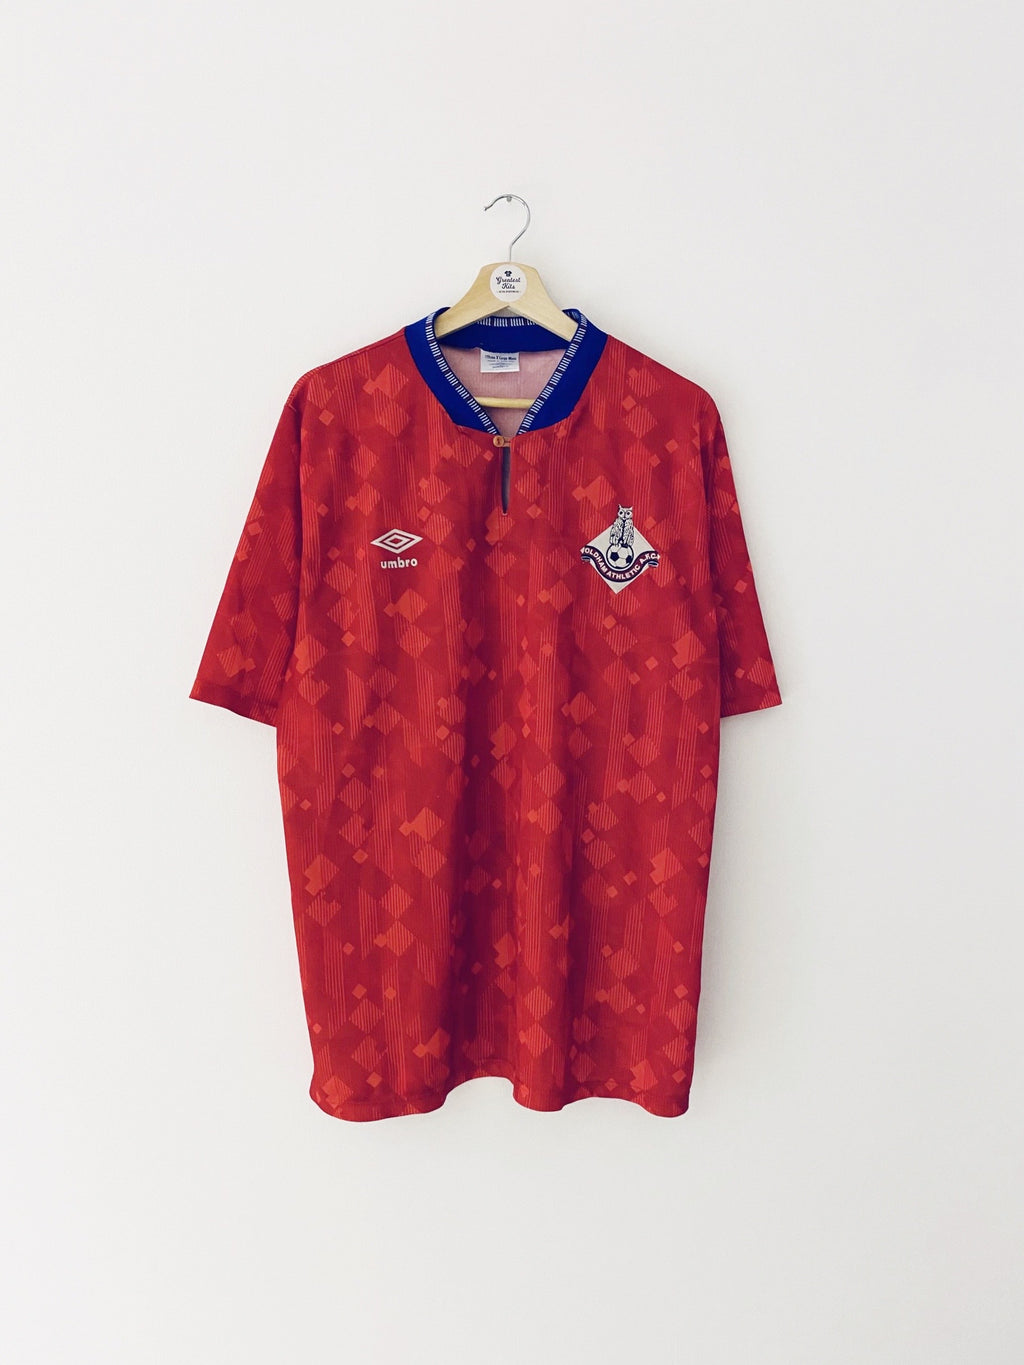 1989/91 Oldham Away Shirt (XL) 9/10